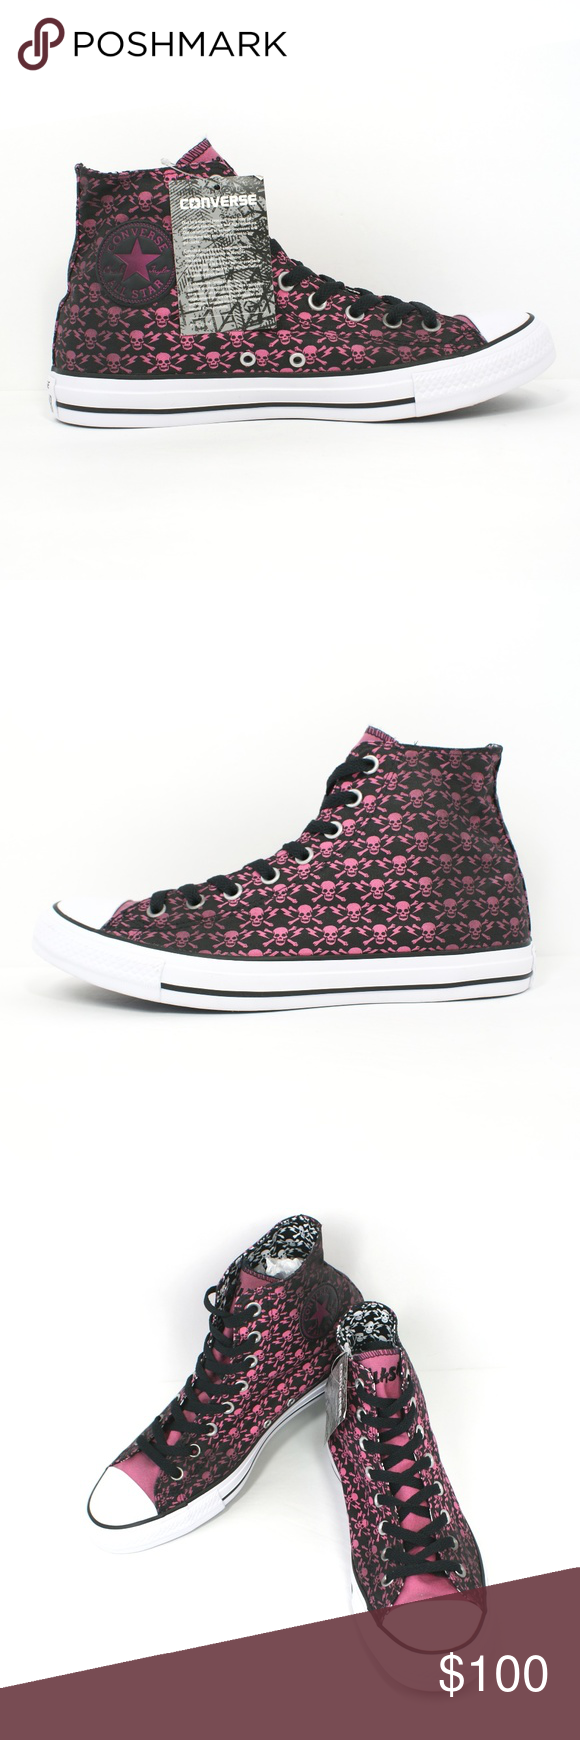 f0fb7834dcaa Converse x The Clash Chuck Taylor All Star Skulls 100% Authentic - New -  Without